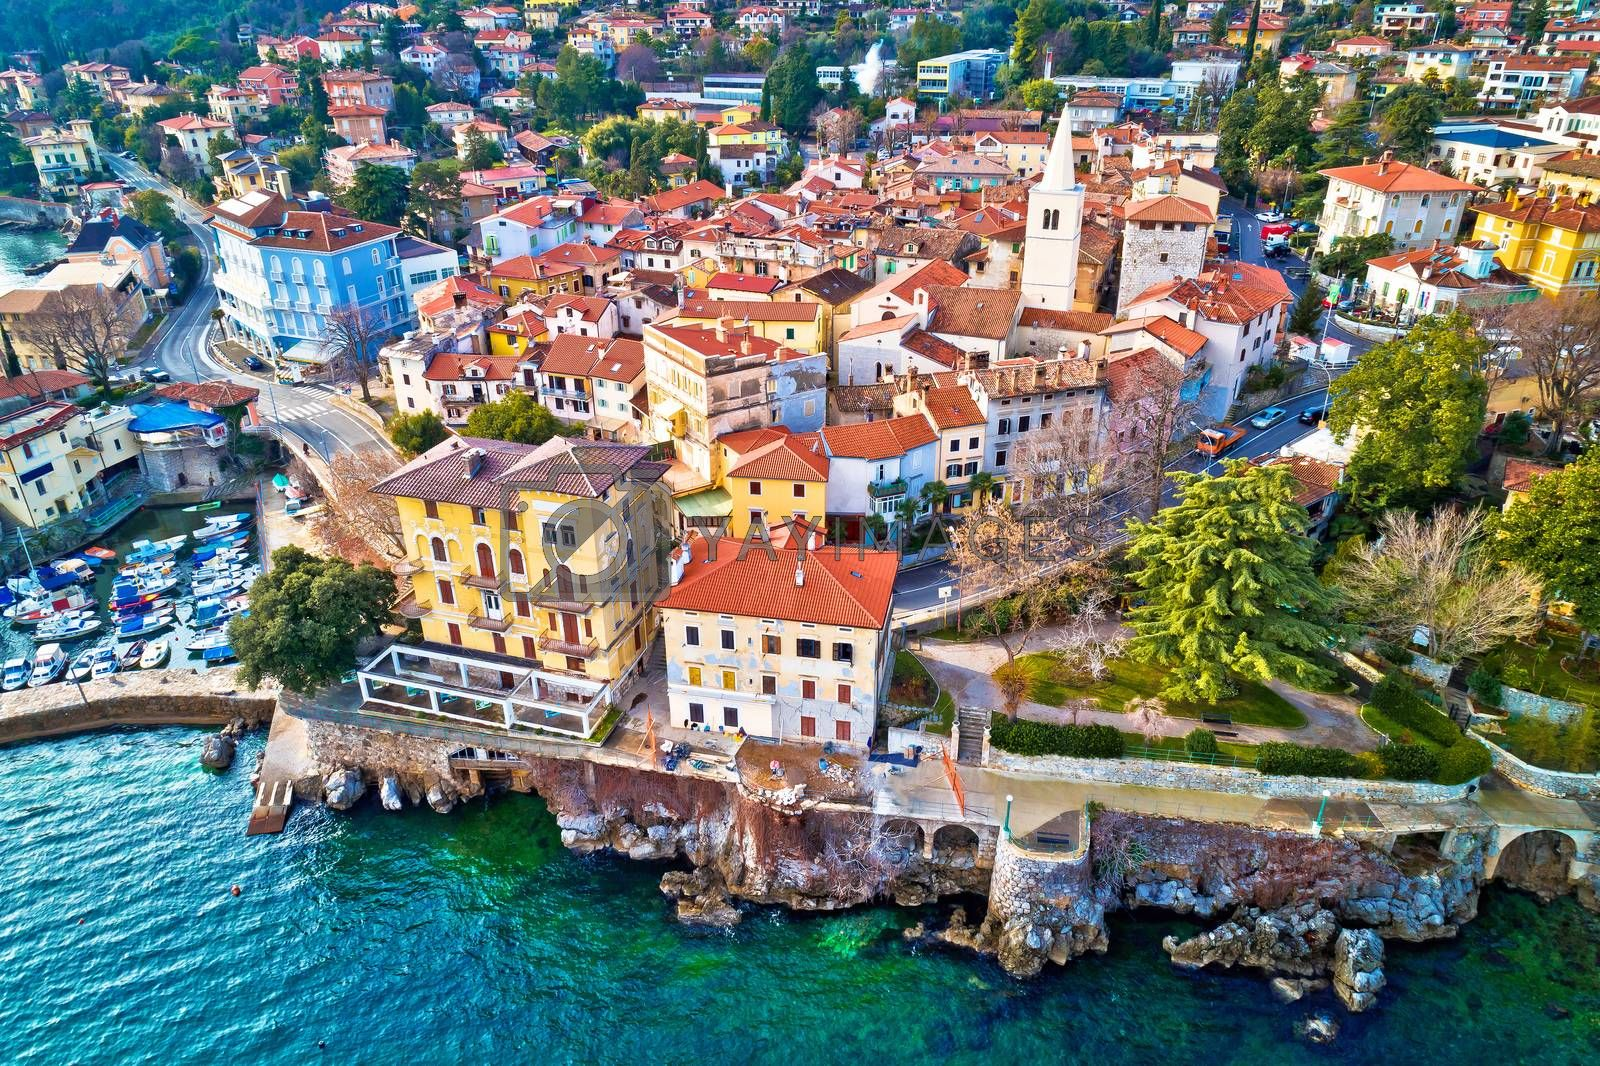 Town of Lovran and Lungomare sea walkway aerial view, Kvarner bay of Croatia